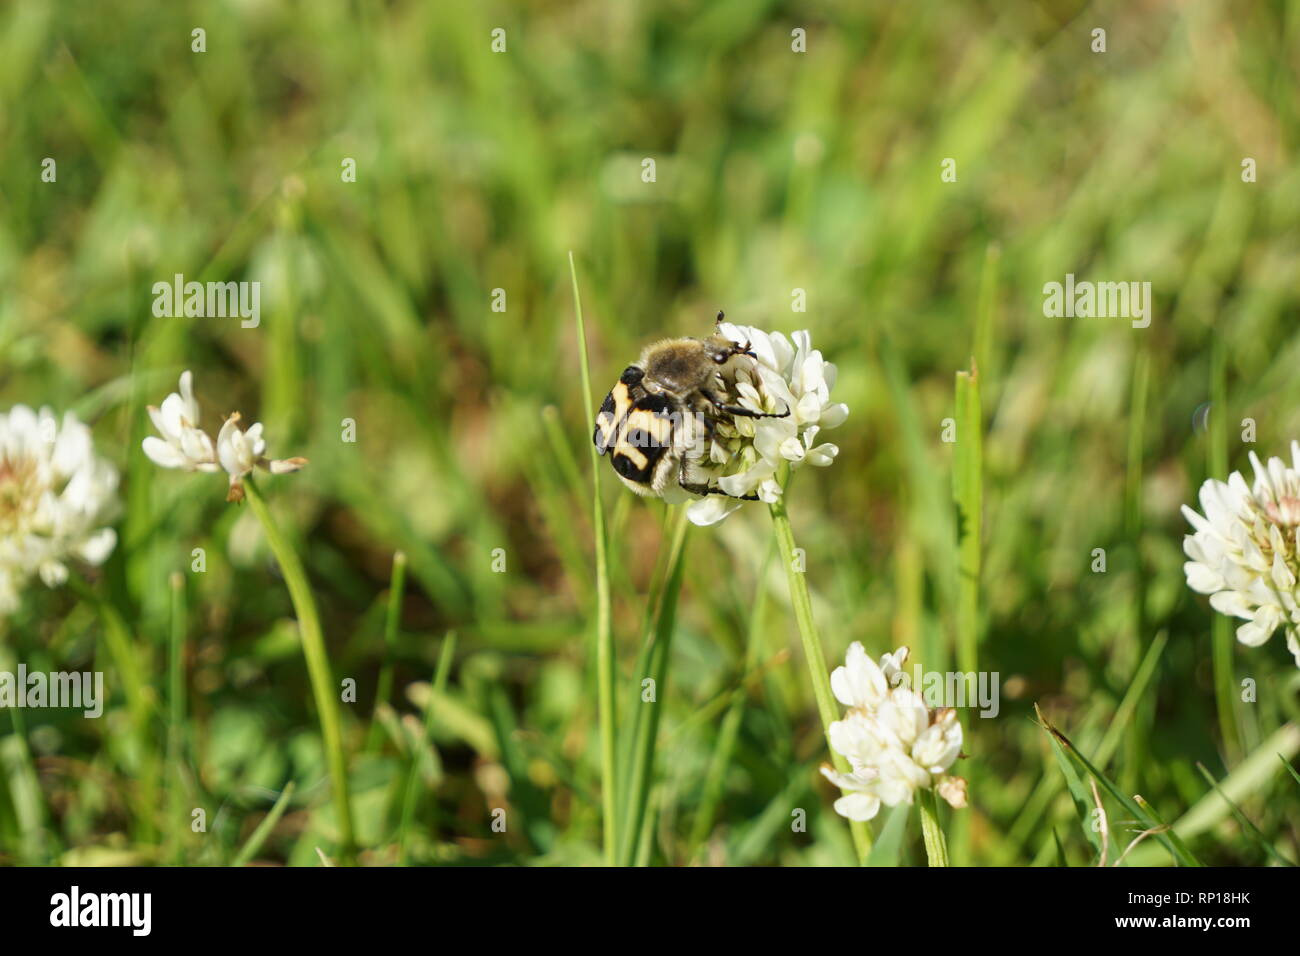 Bumblebee wannabe bug sitting on a white clover flower - Stock Image